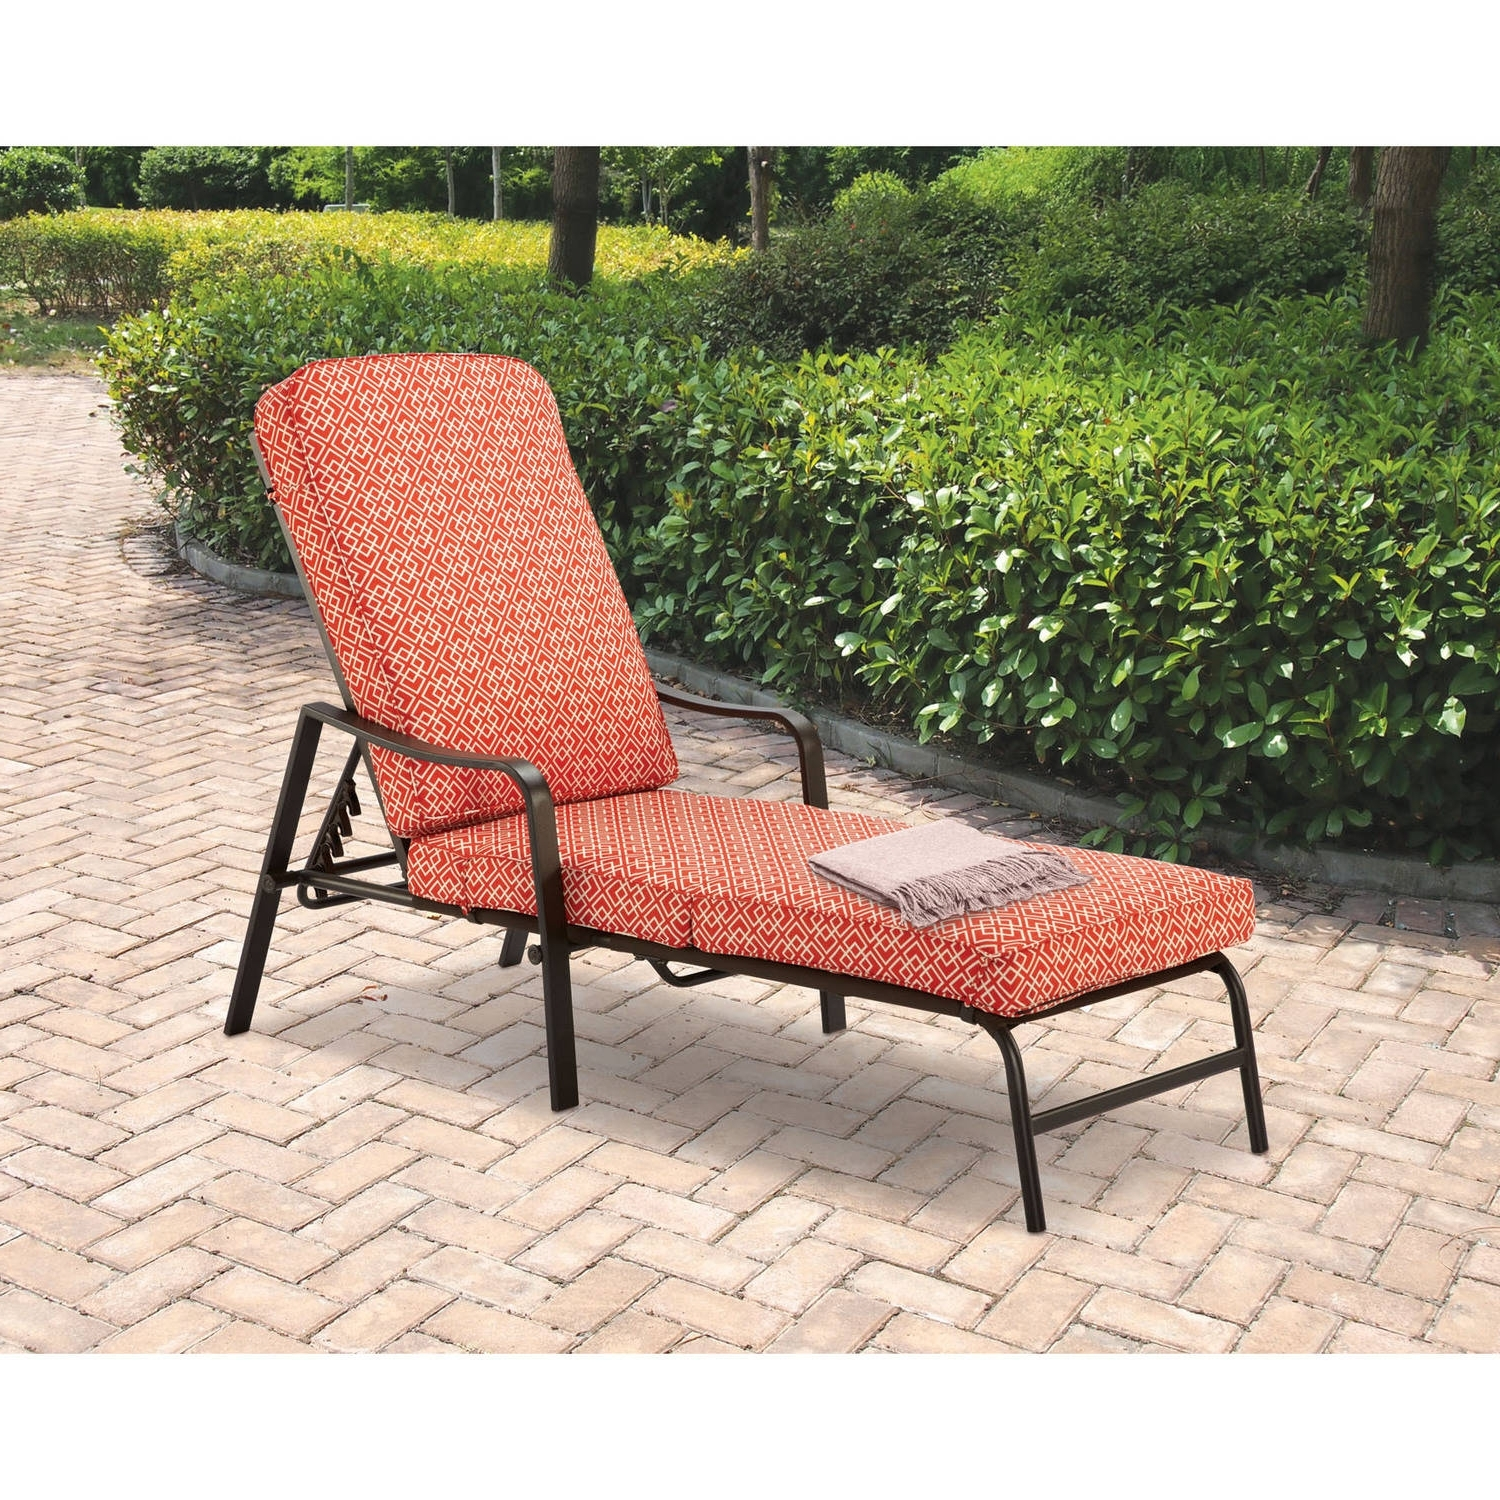 Mainstays Outdoor Chaise Lounge, Orange Geo Pattern – Walmart With Widely Used Chaise Lounge Chairs At Walmart (View 11 of 15)